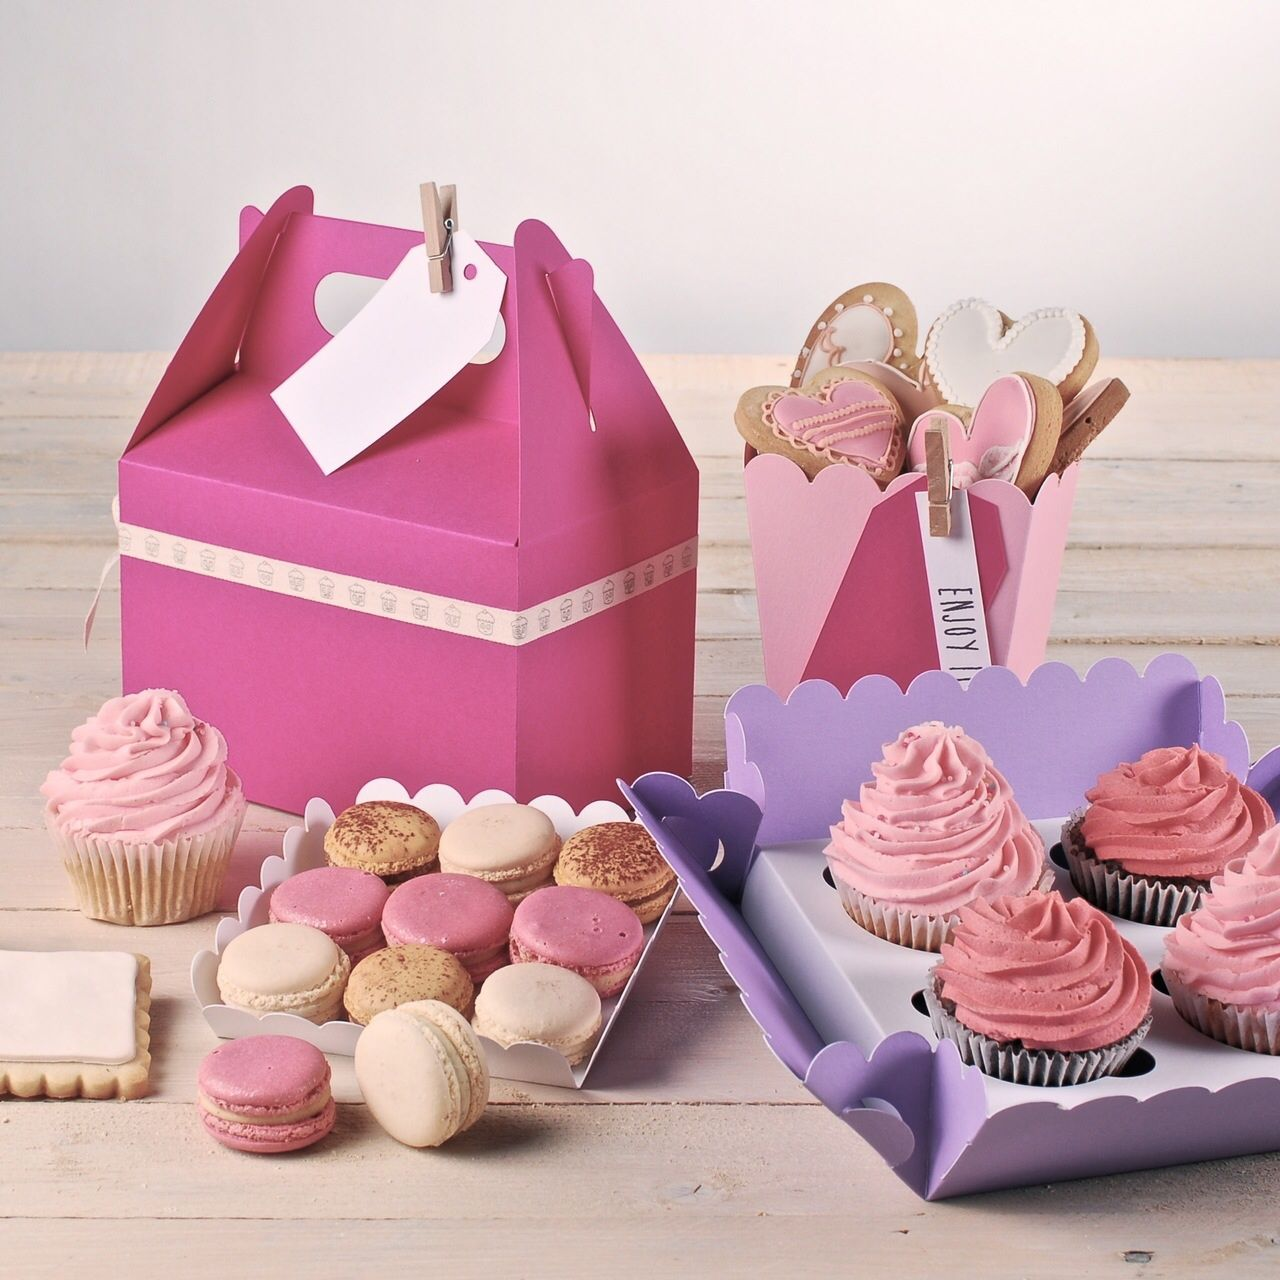 Bakery boxes. Visit us: http://selfpackaging.com/56-bakery-boxes ...